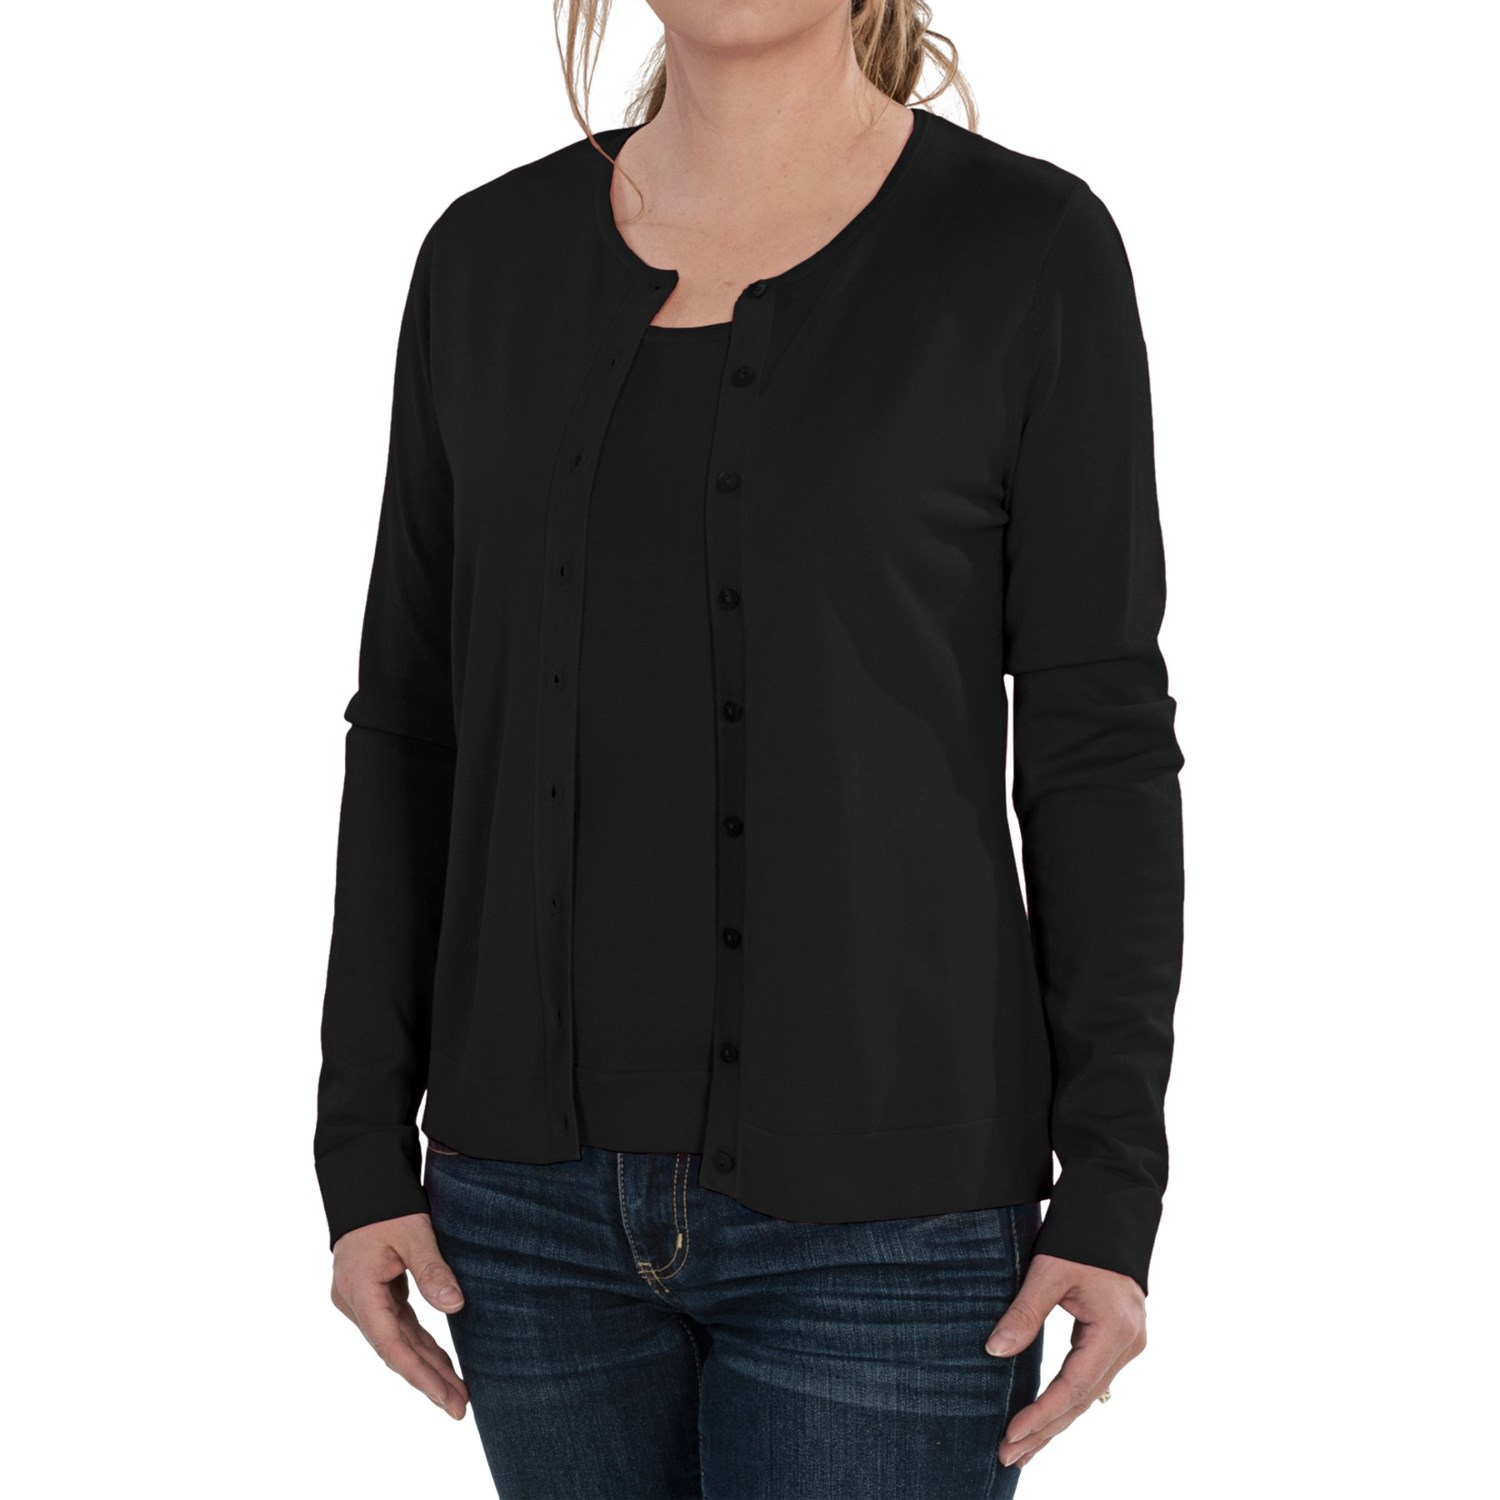 August Silk Cardigan A cardigan is the ideal way to wrap up warm without covering up your outfit. Typically, they come in a number of flattering shapes and styles, and every shade from effortless neutrals to .